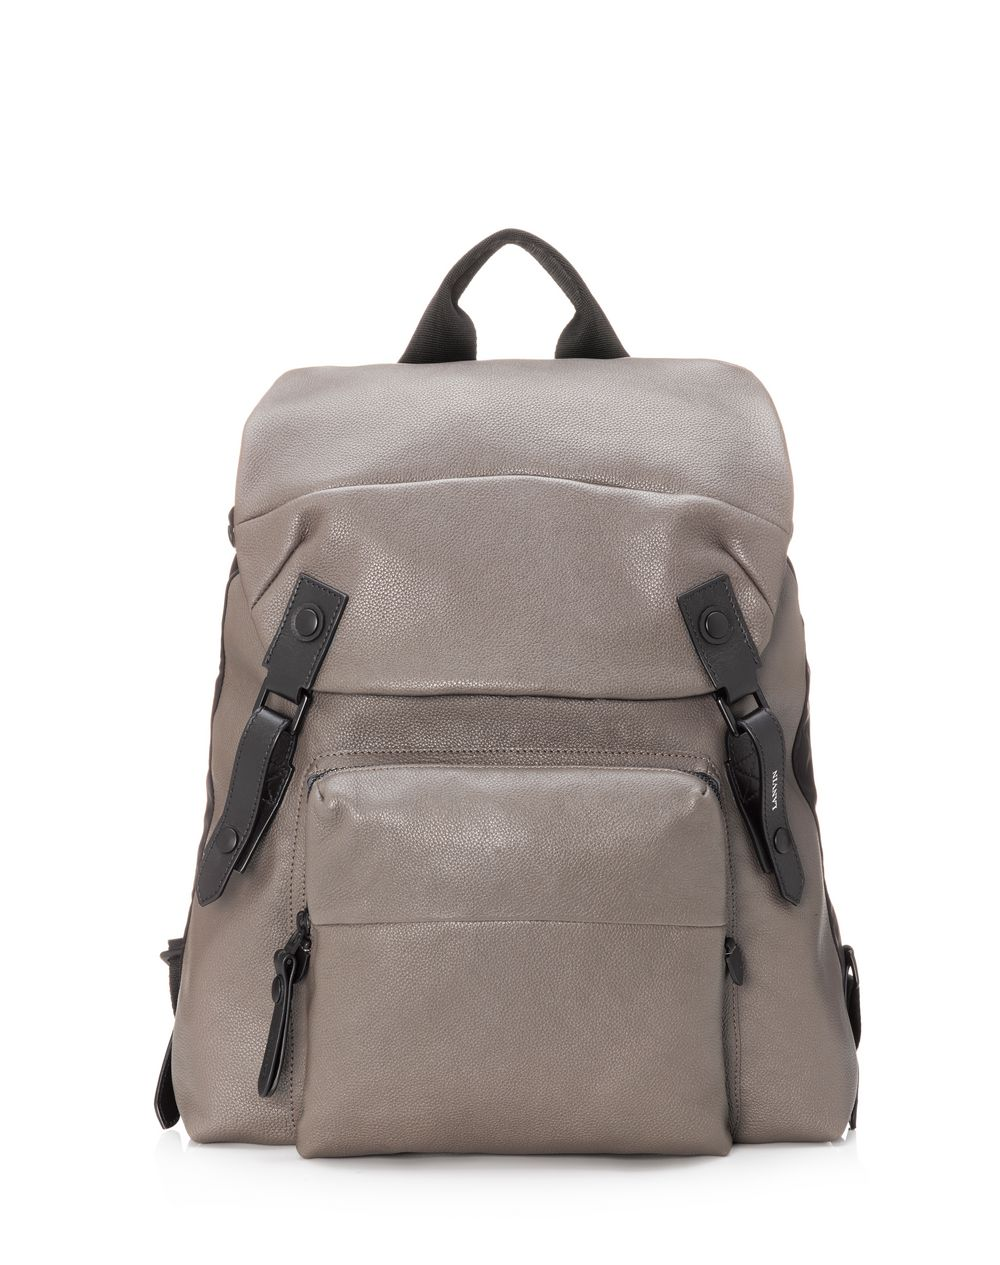 Rucksack in natural grain calfskin - Lanvin